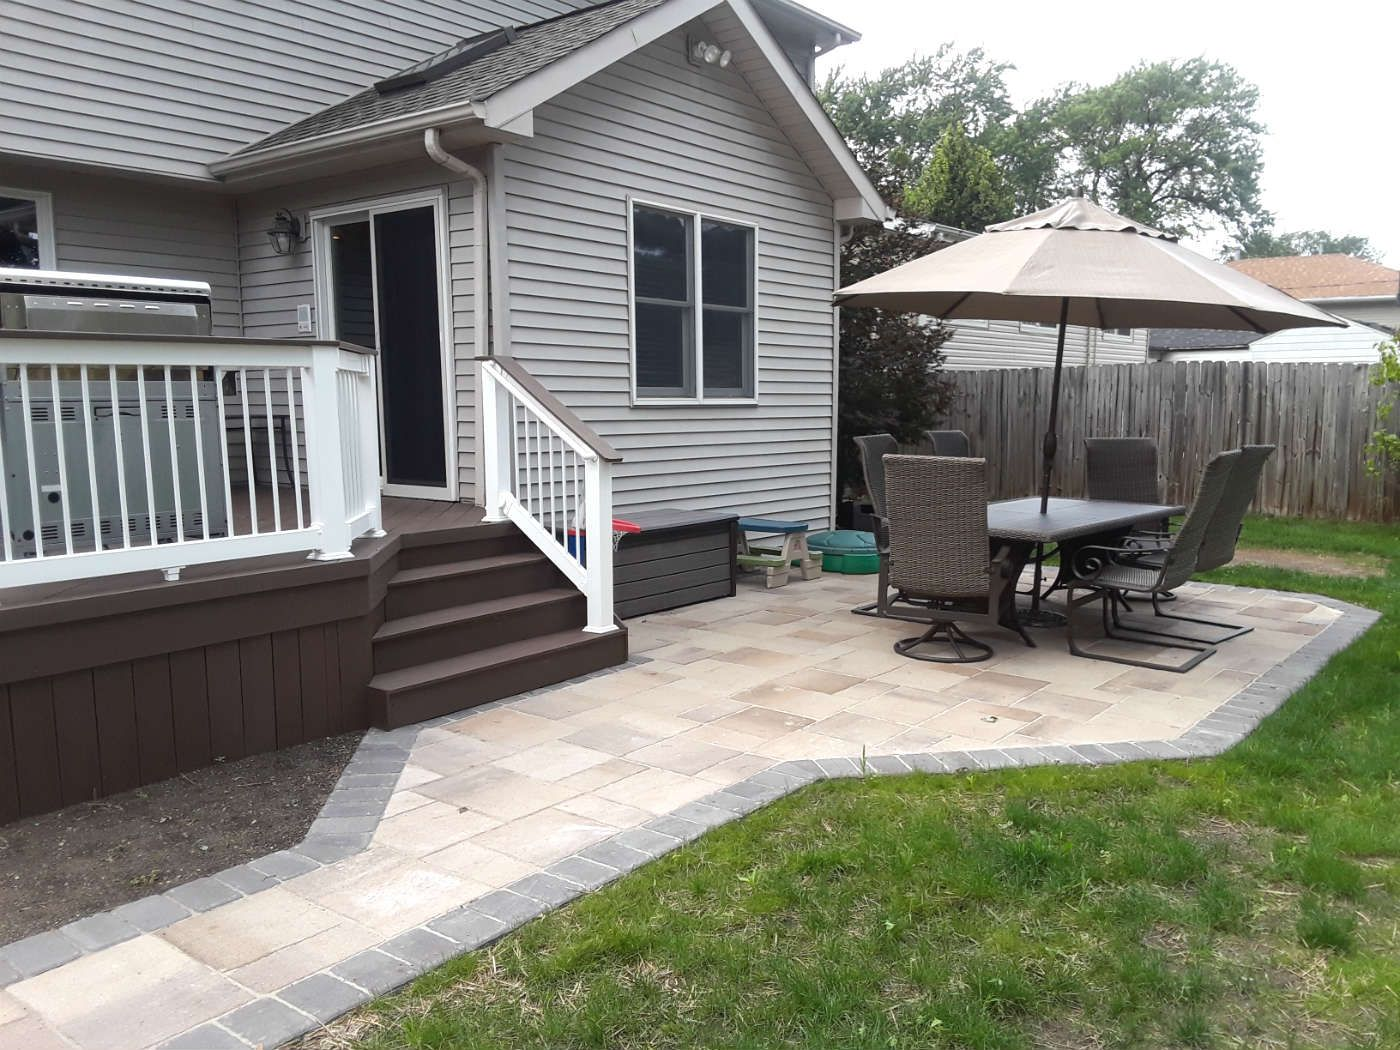 Beautiful Deck And Patio Combination Project Using Timbertech Decking And Belgard Paver Patios Patio Builders Paver Patio Patio